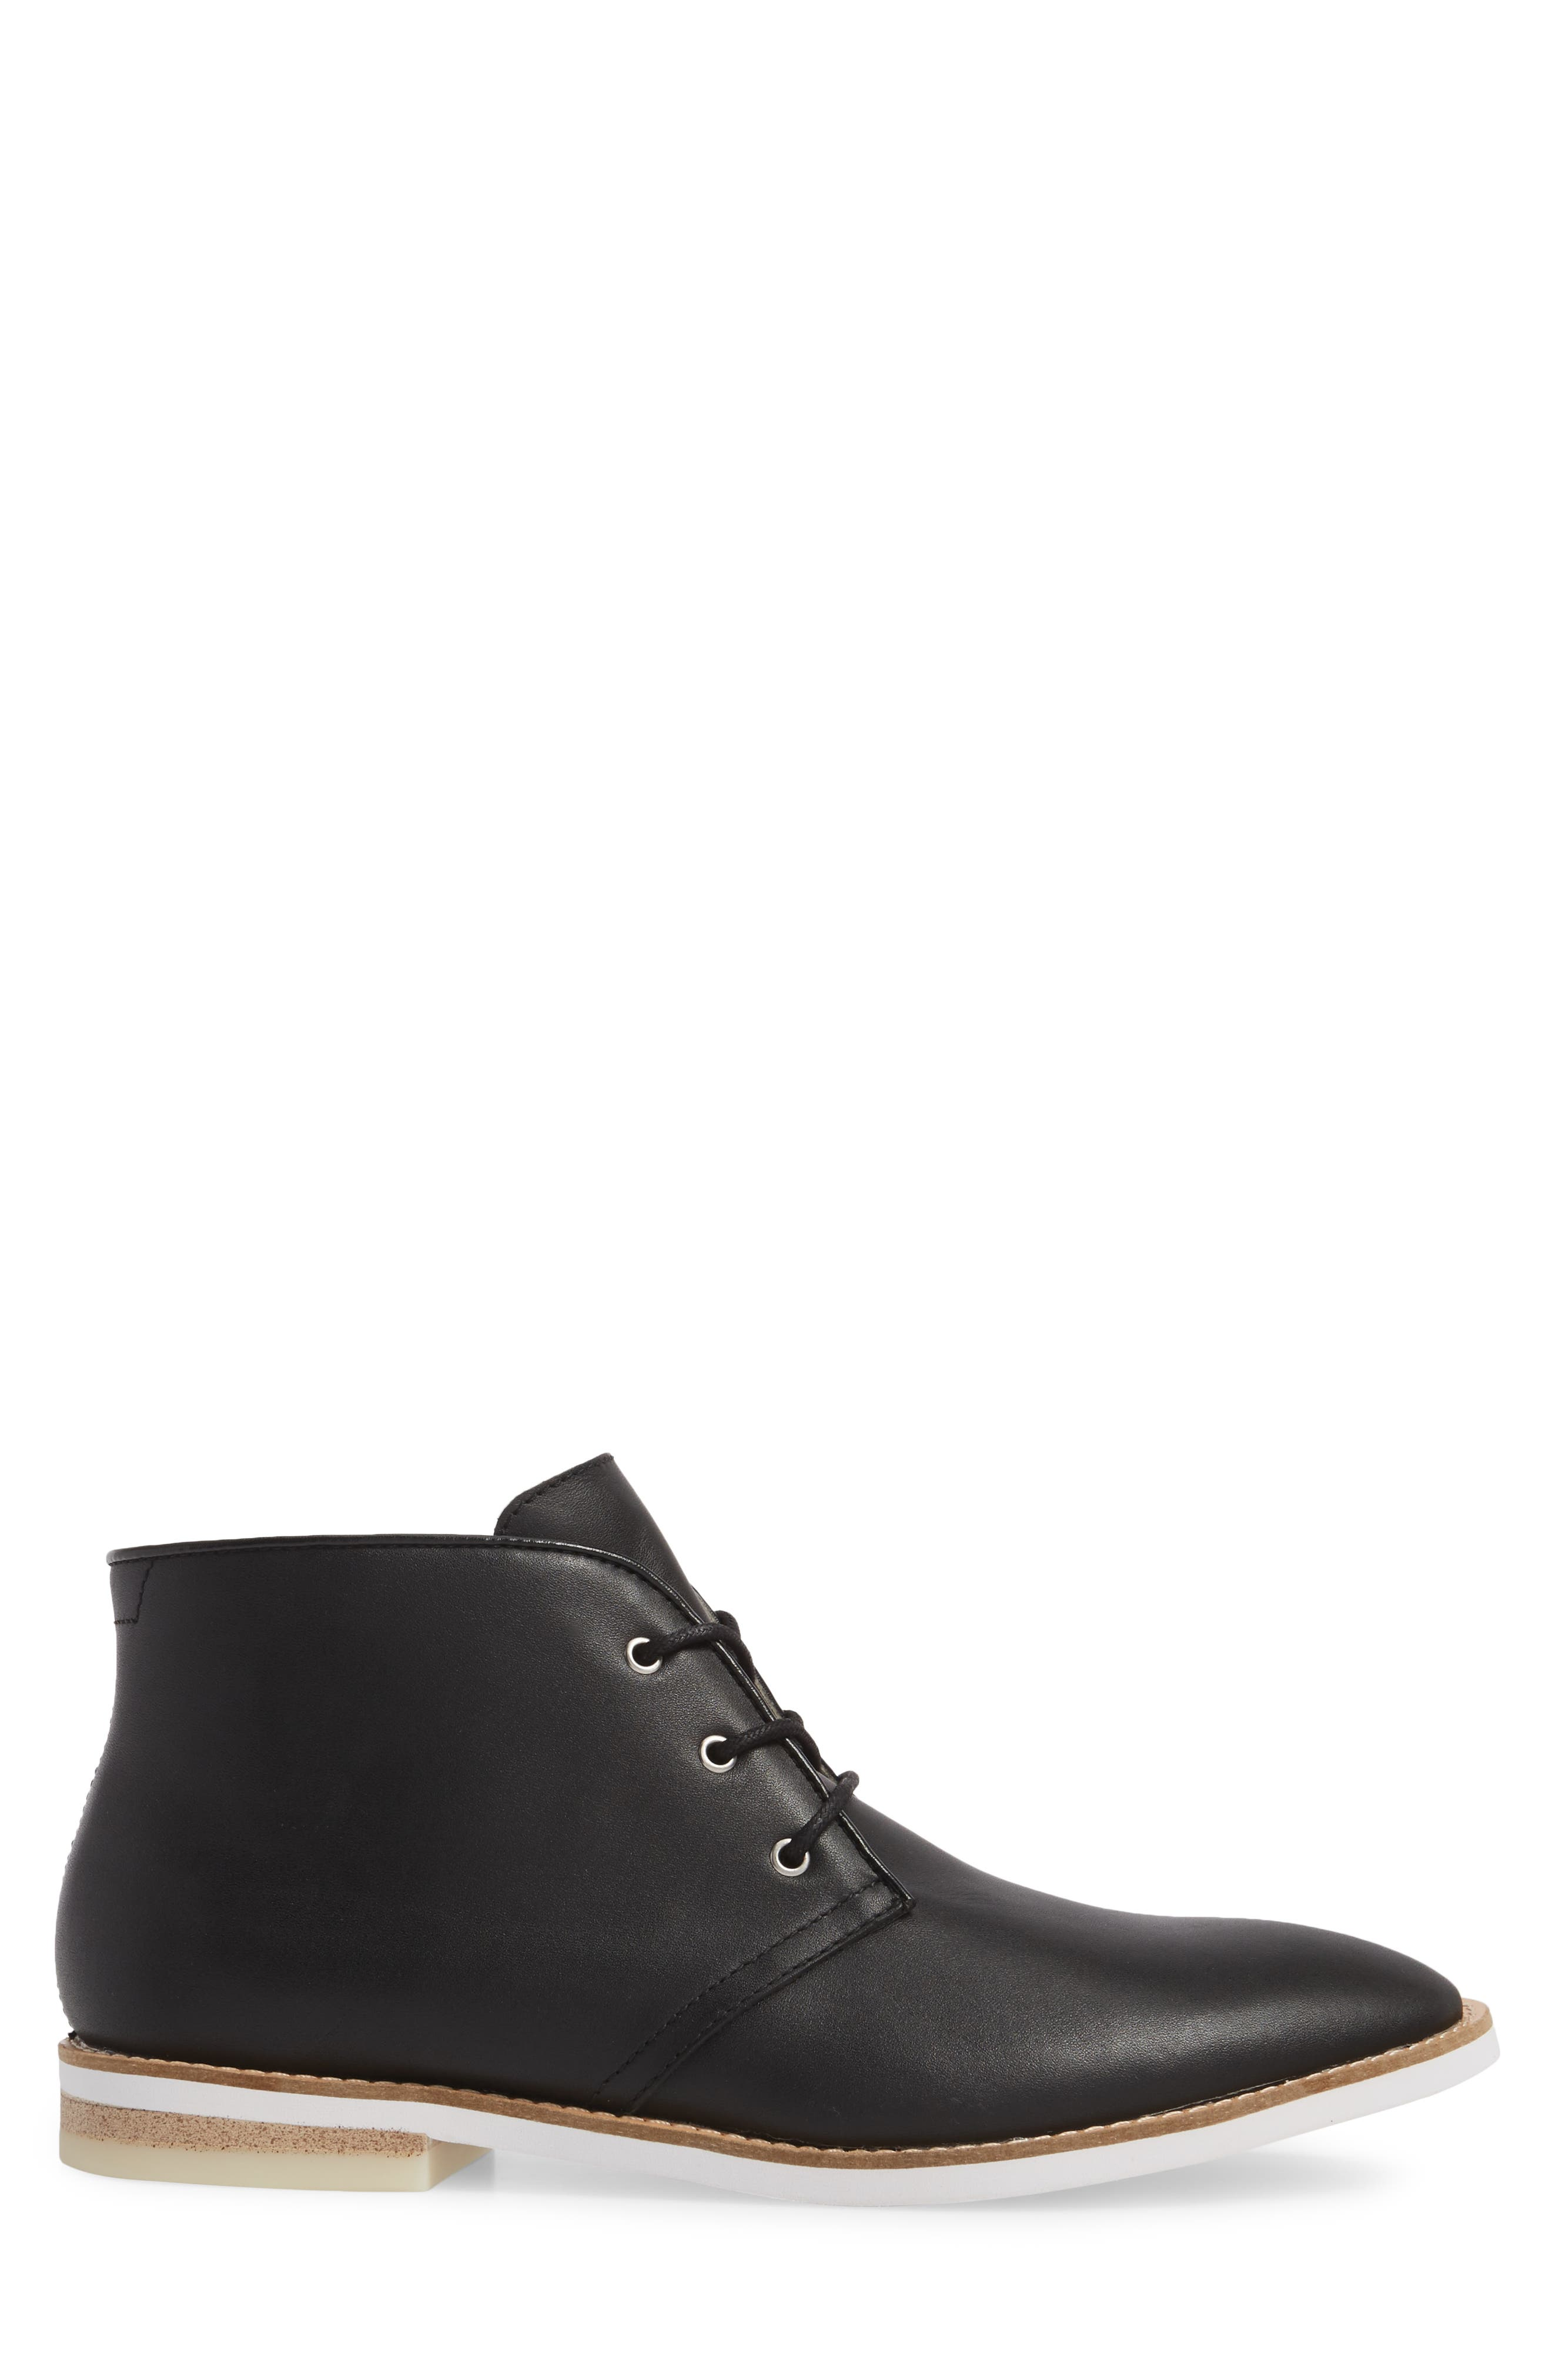 Albe Chukka Boot,                             Alternate thumbnail 3, color,                             Black Leather